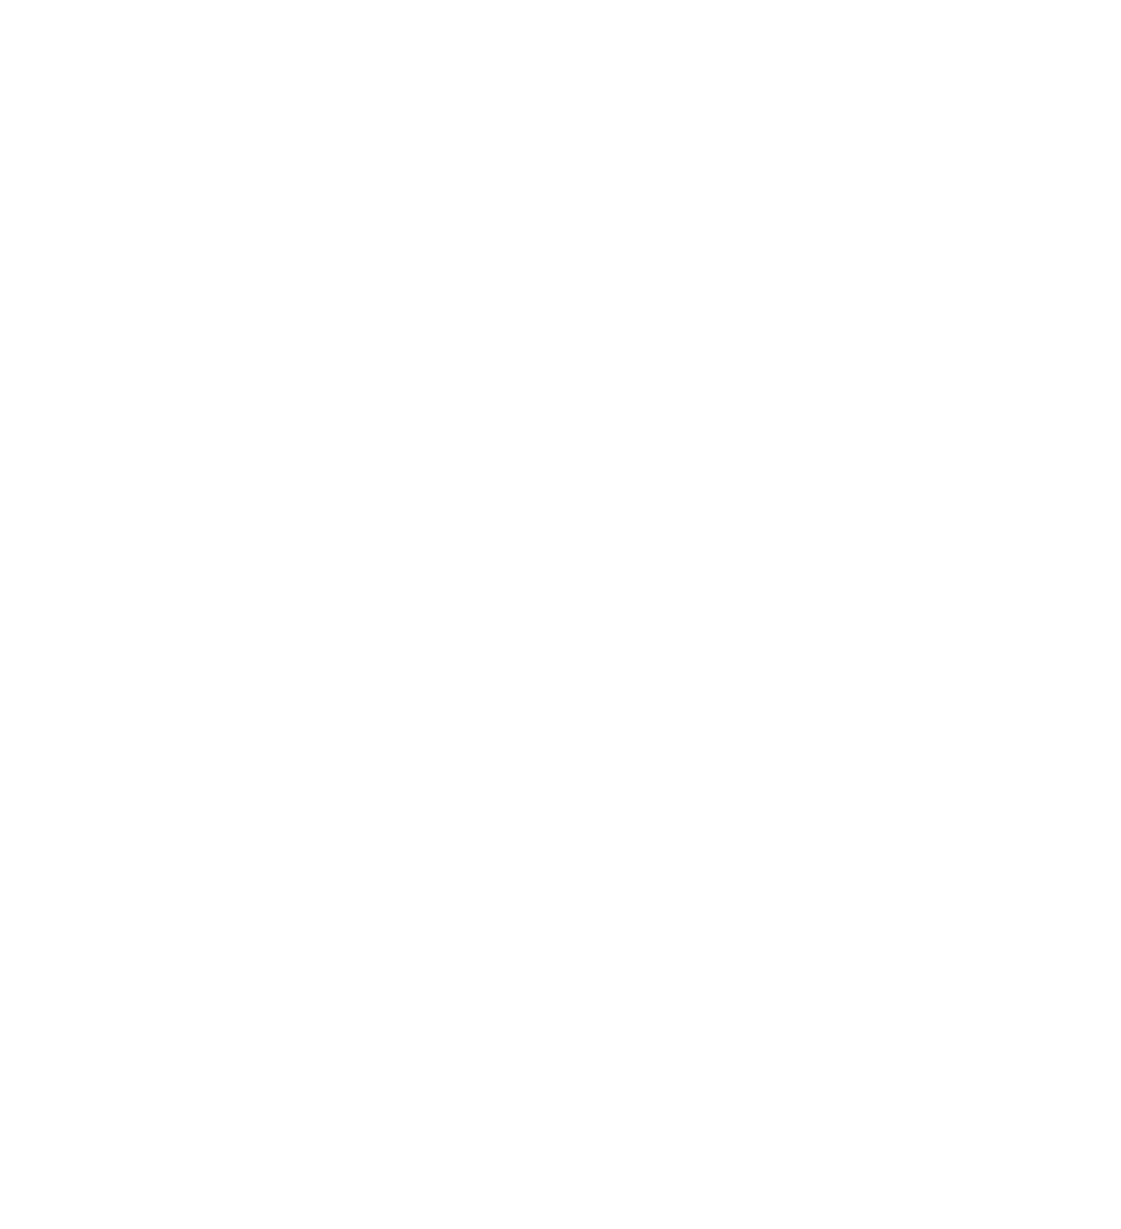 Windows 10 logo png white. Release qt your product